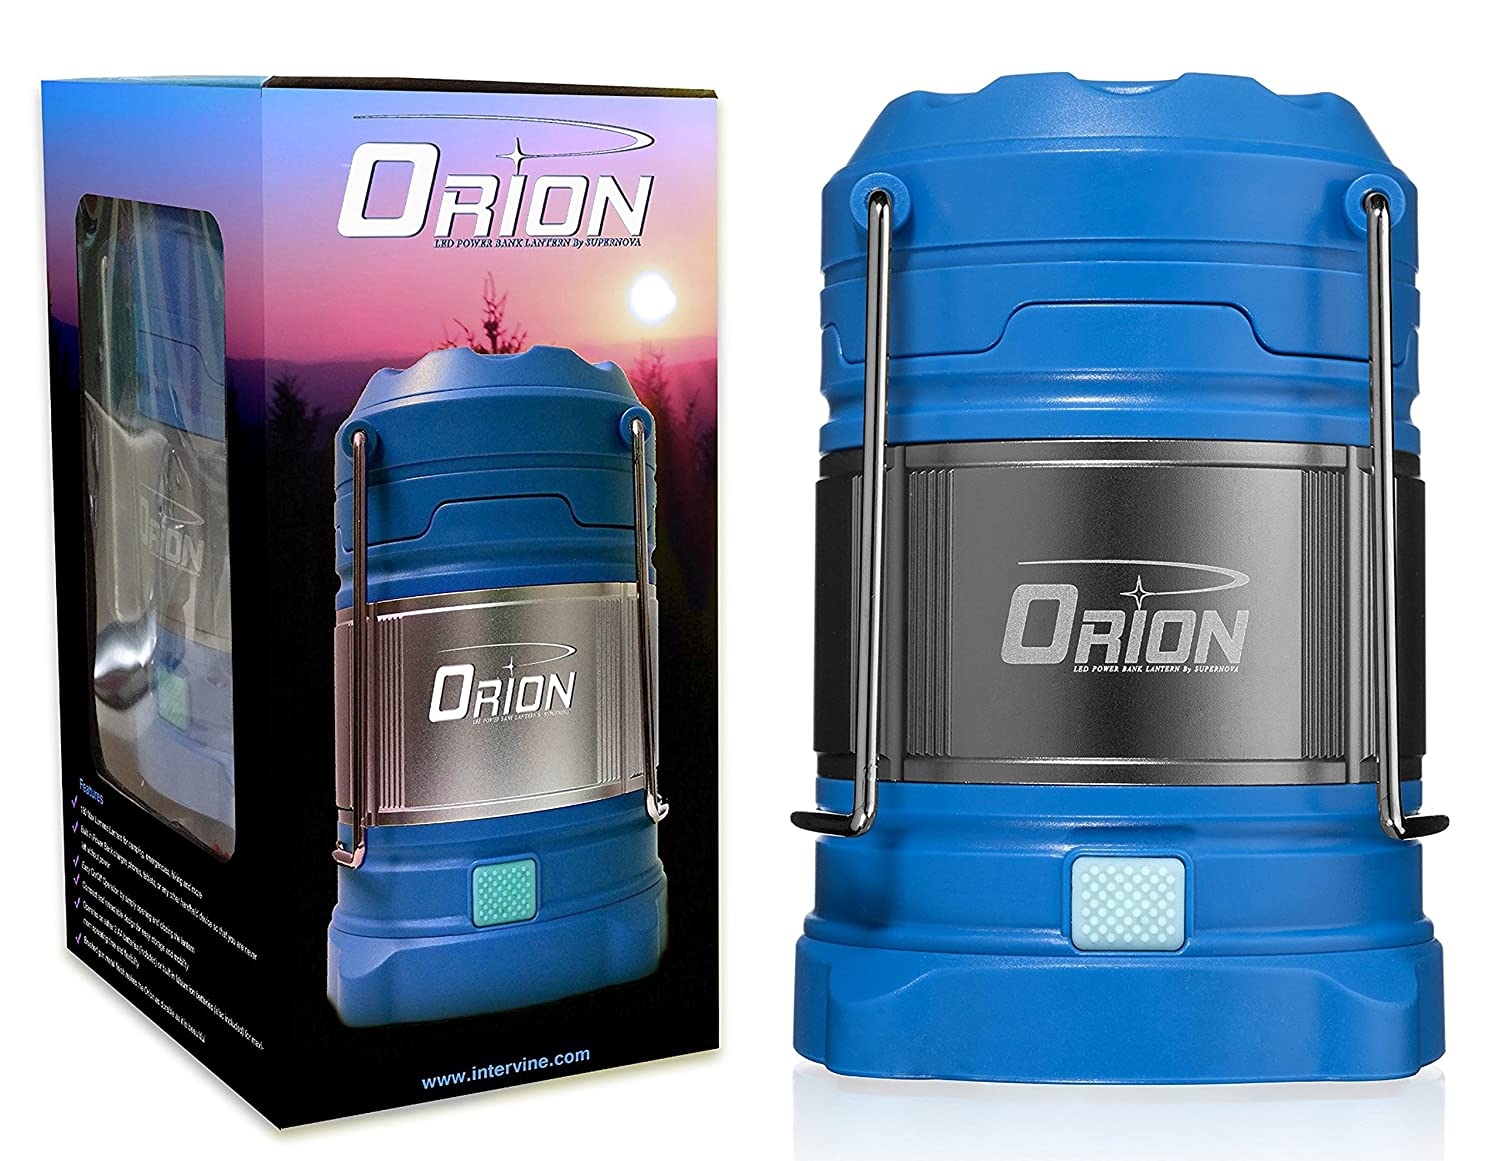 Supernova Orion Ultimate Survival Rechargeable Led Lantern And Power Versatile Emergency Lamp Bank The Most Brightest Unique Camping Recreation